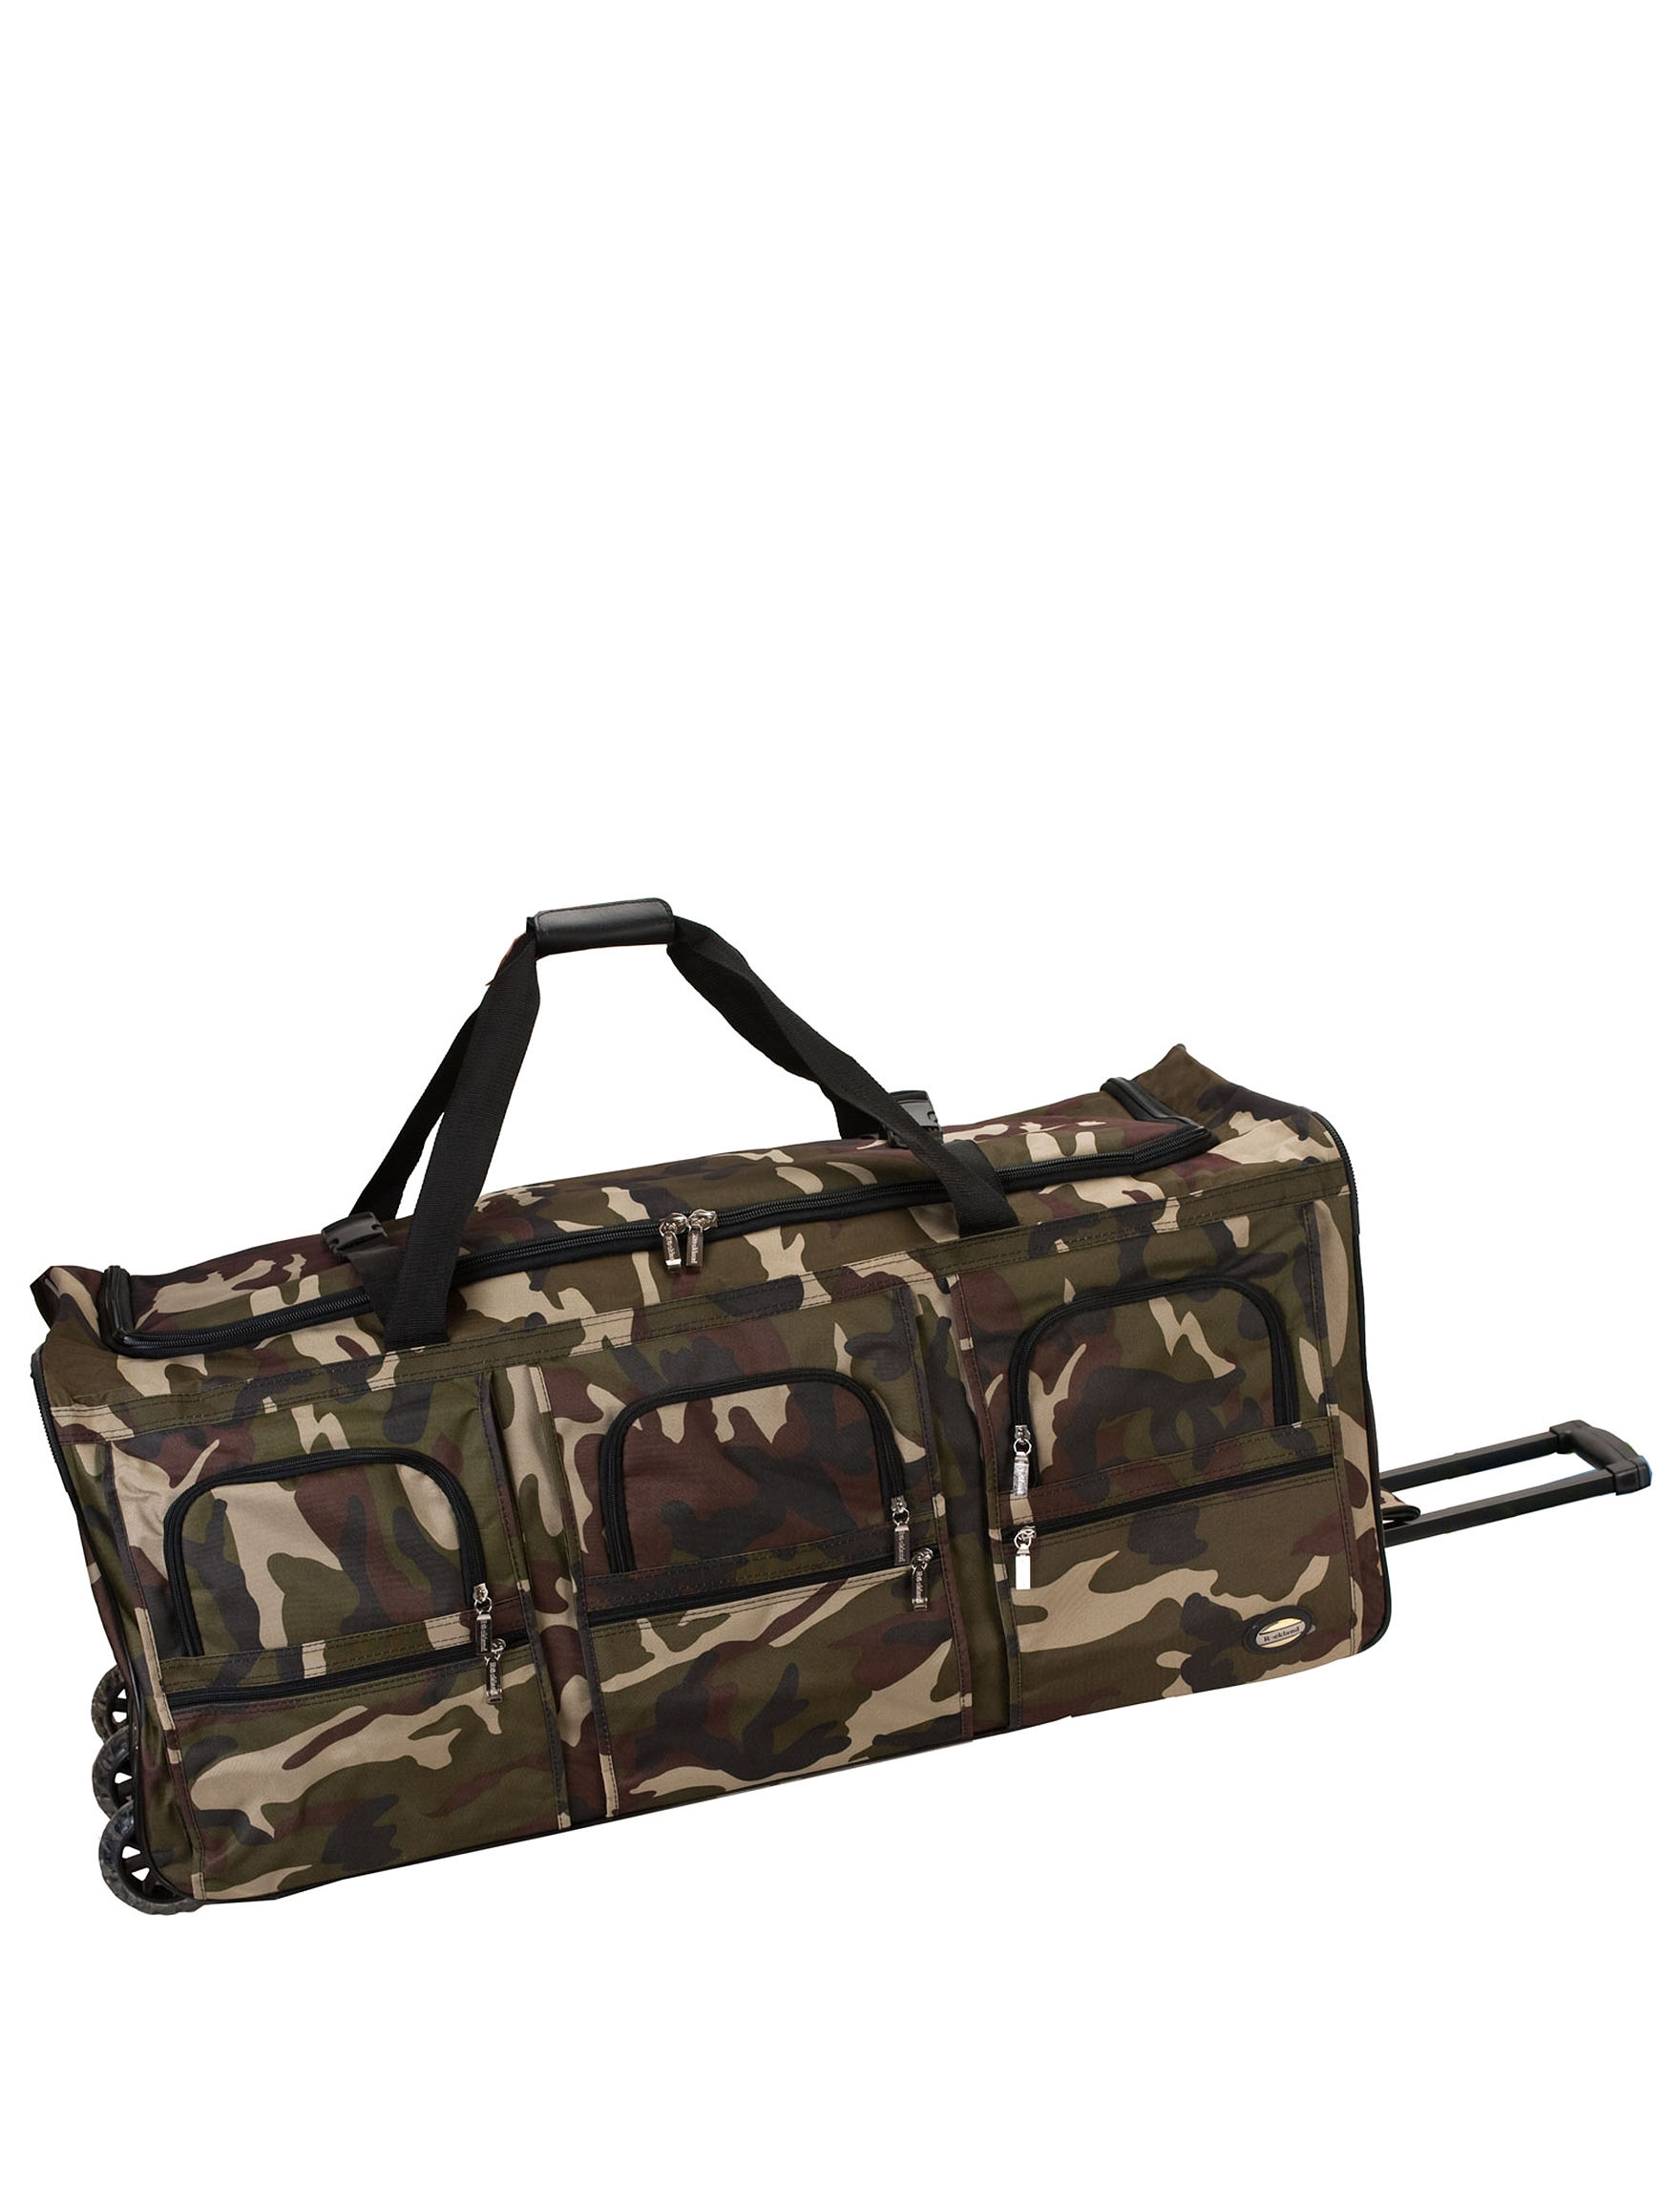 Rockland Green Camo Duffle Bags Upright Spinners